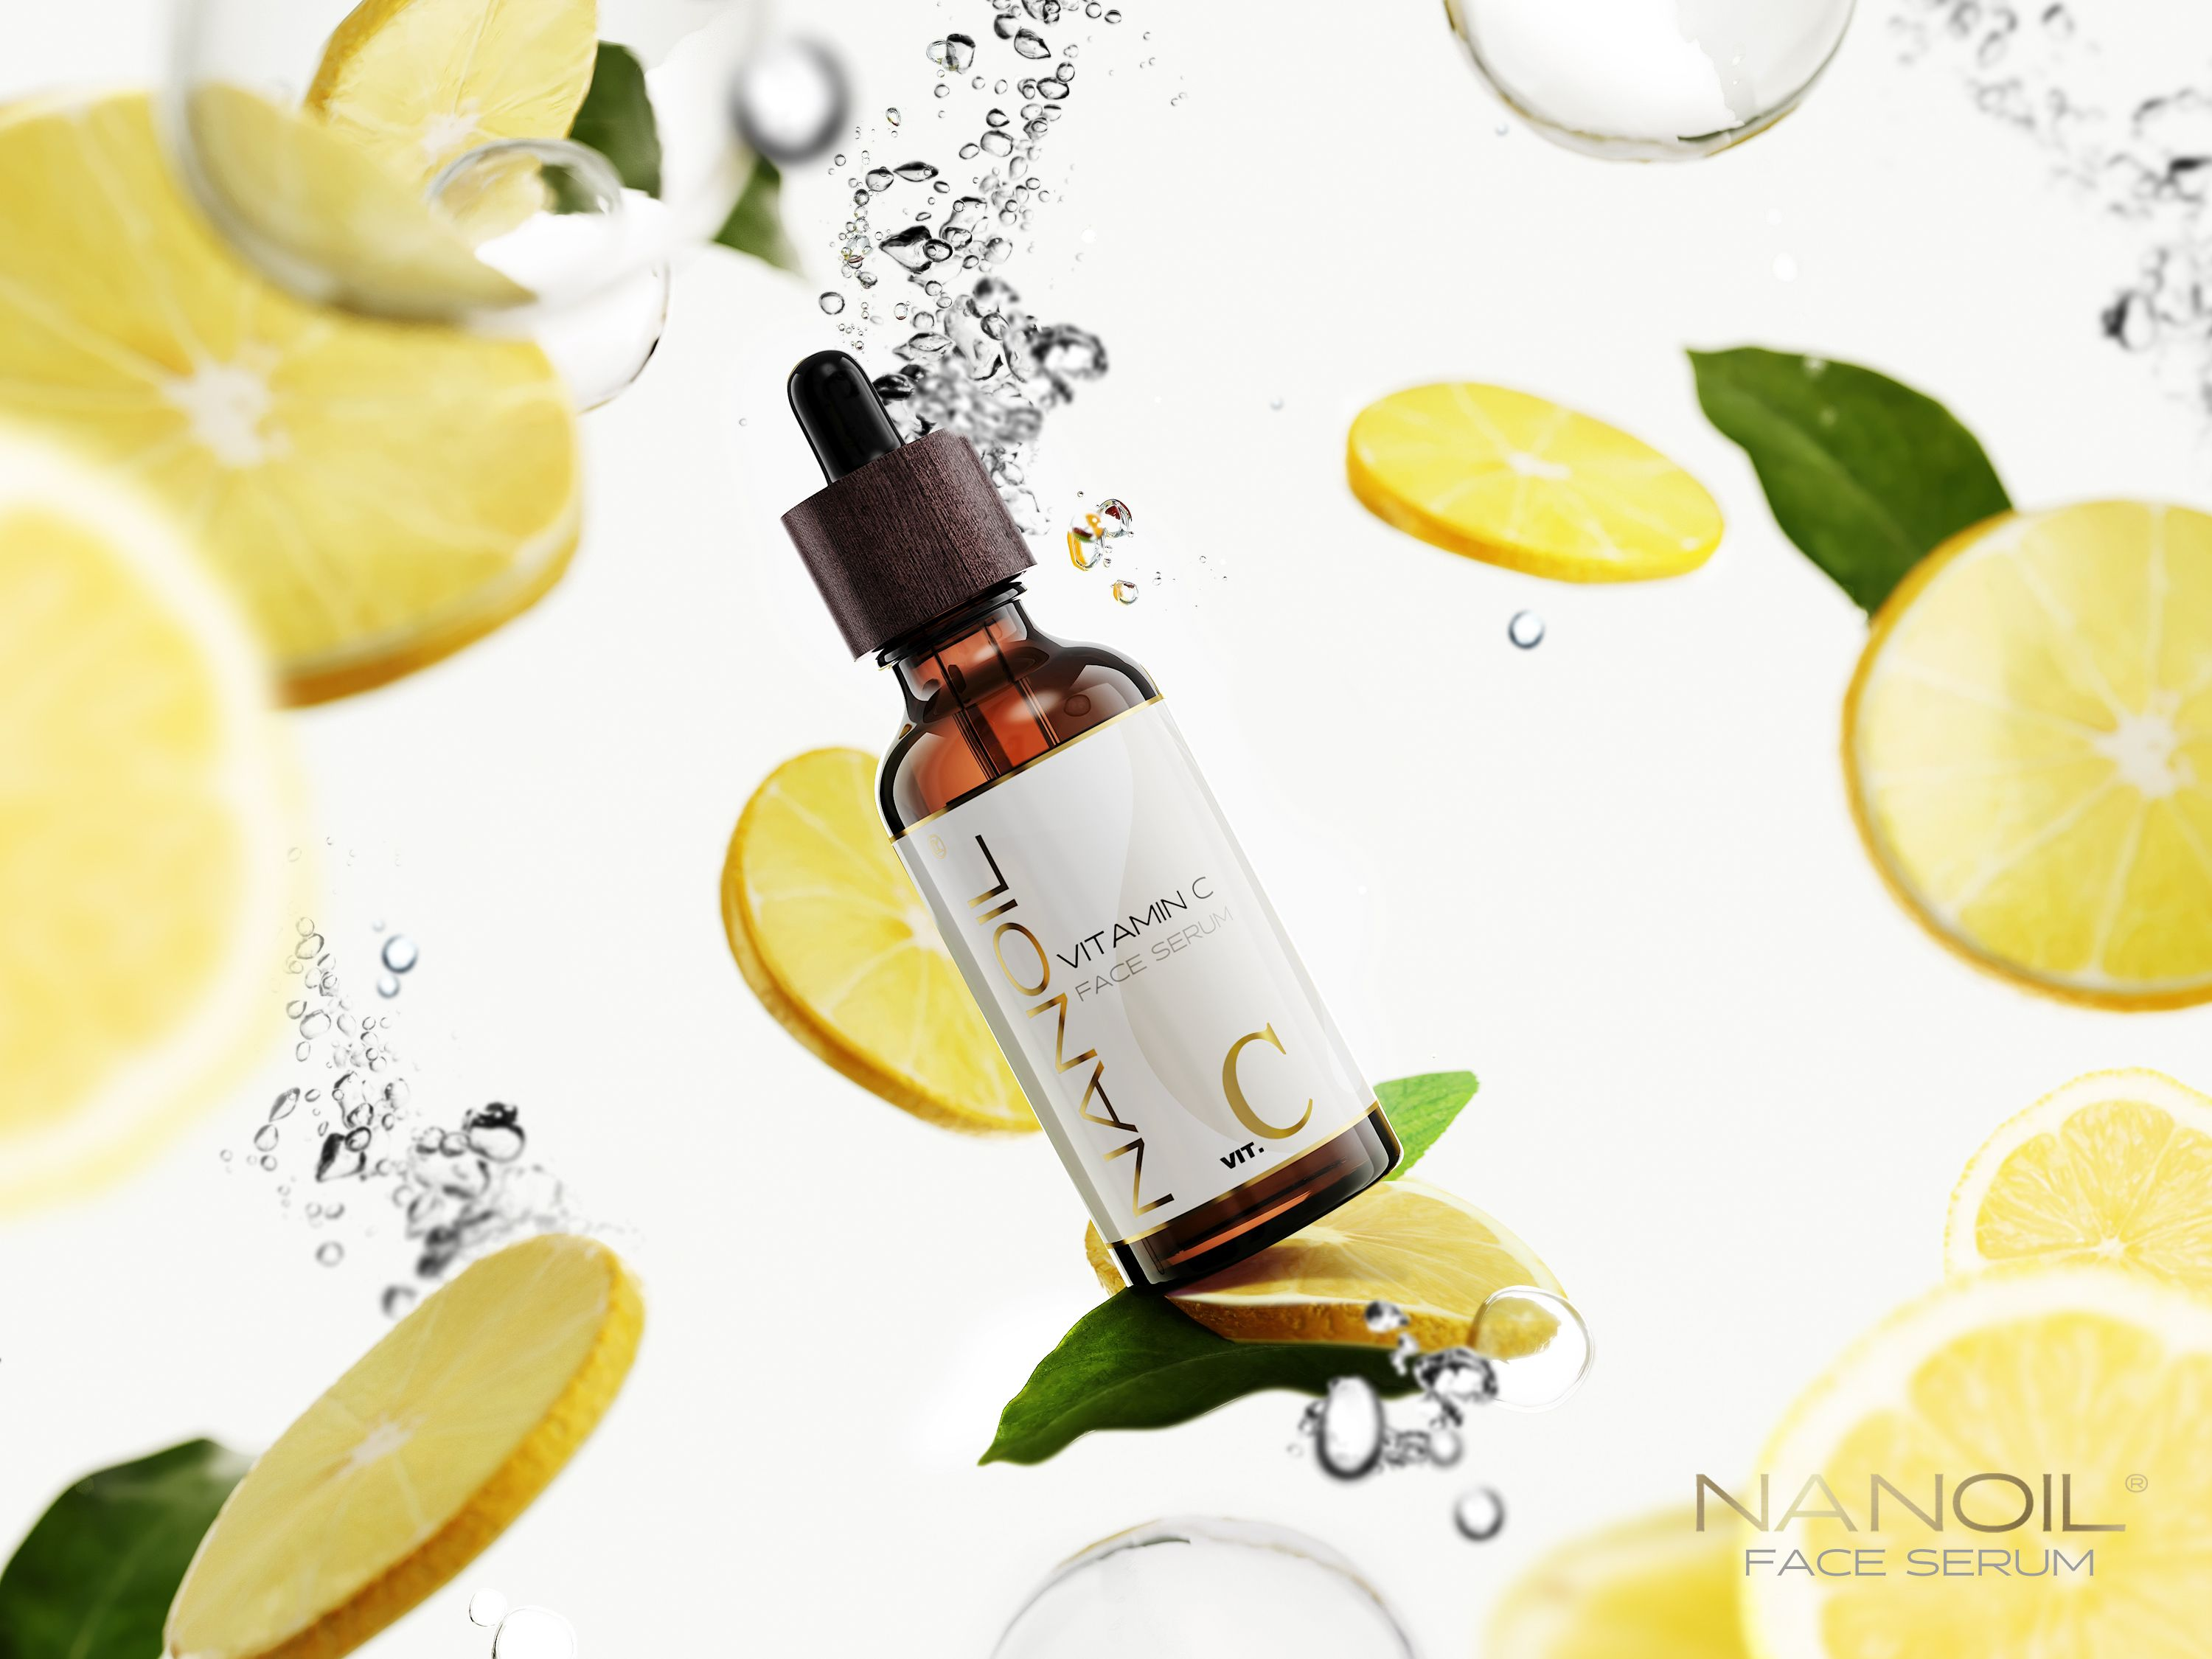 nanoil vit c face serum